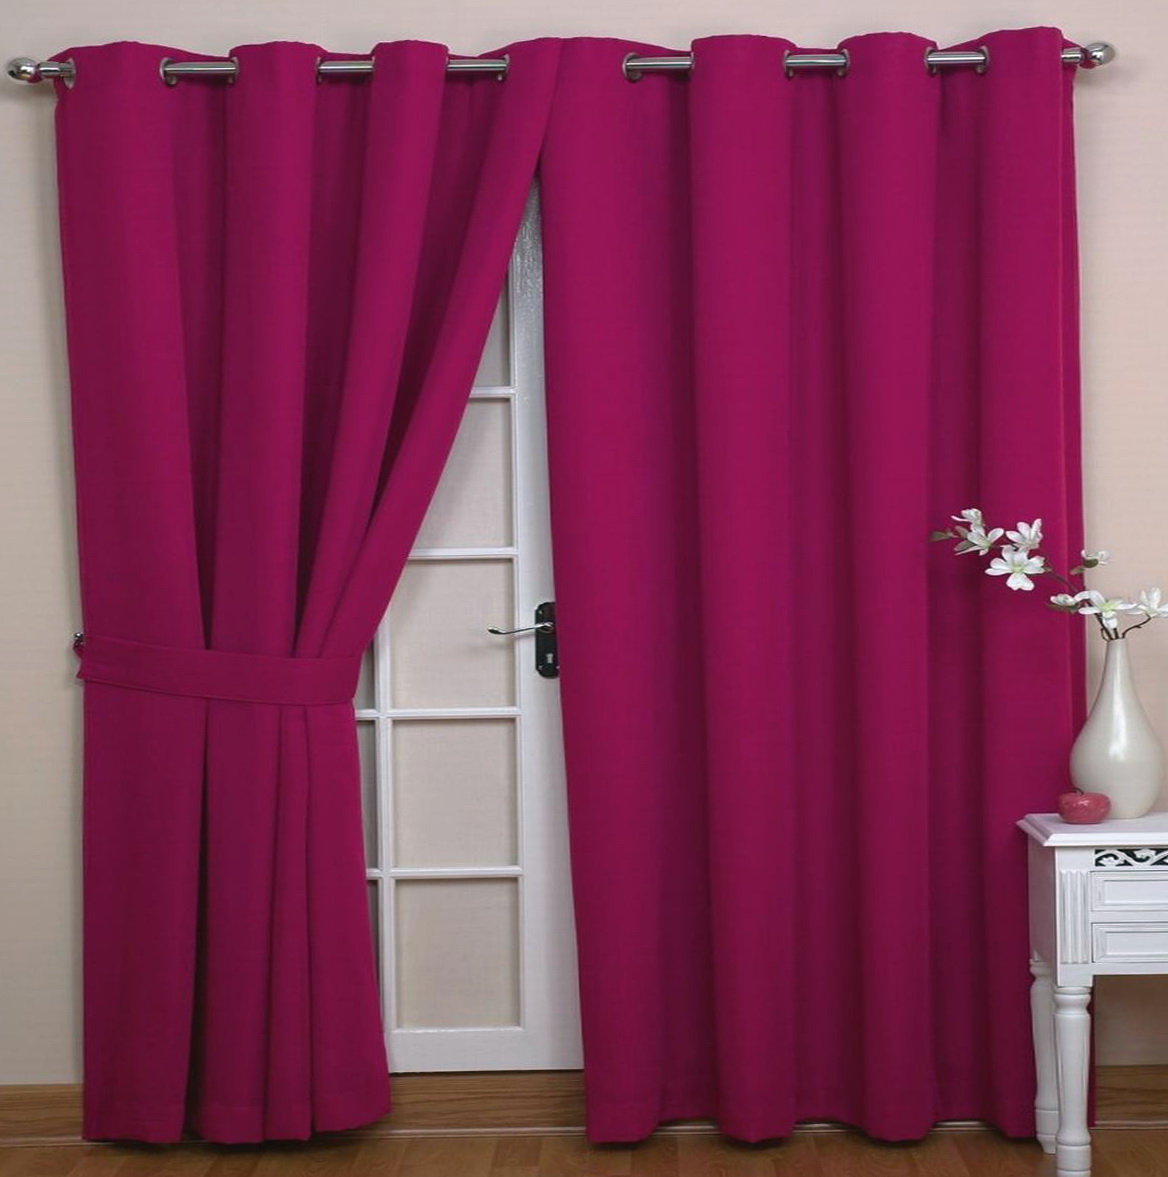 Curtains For Bedroom Indian